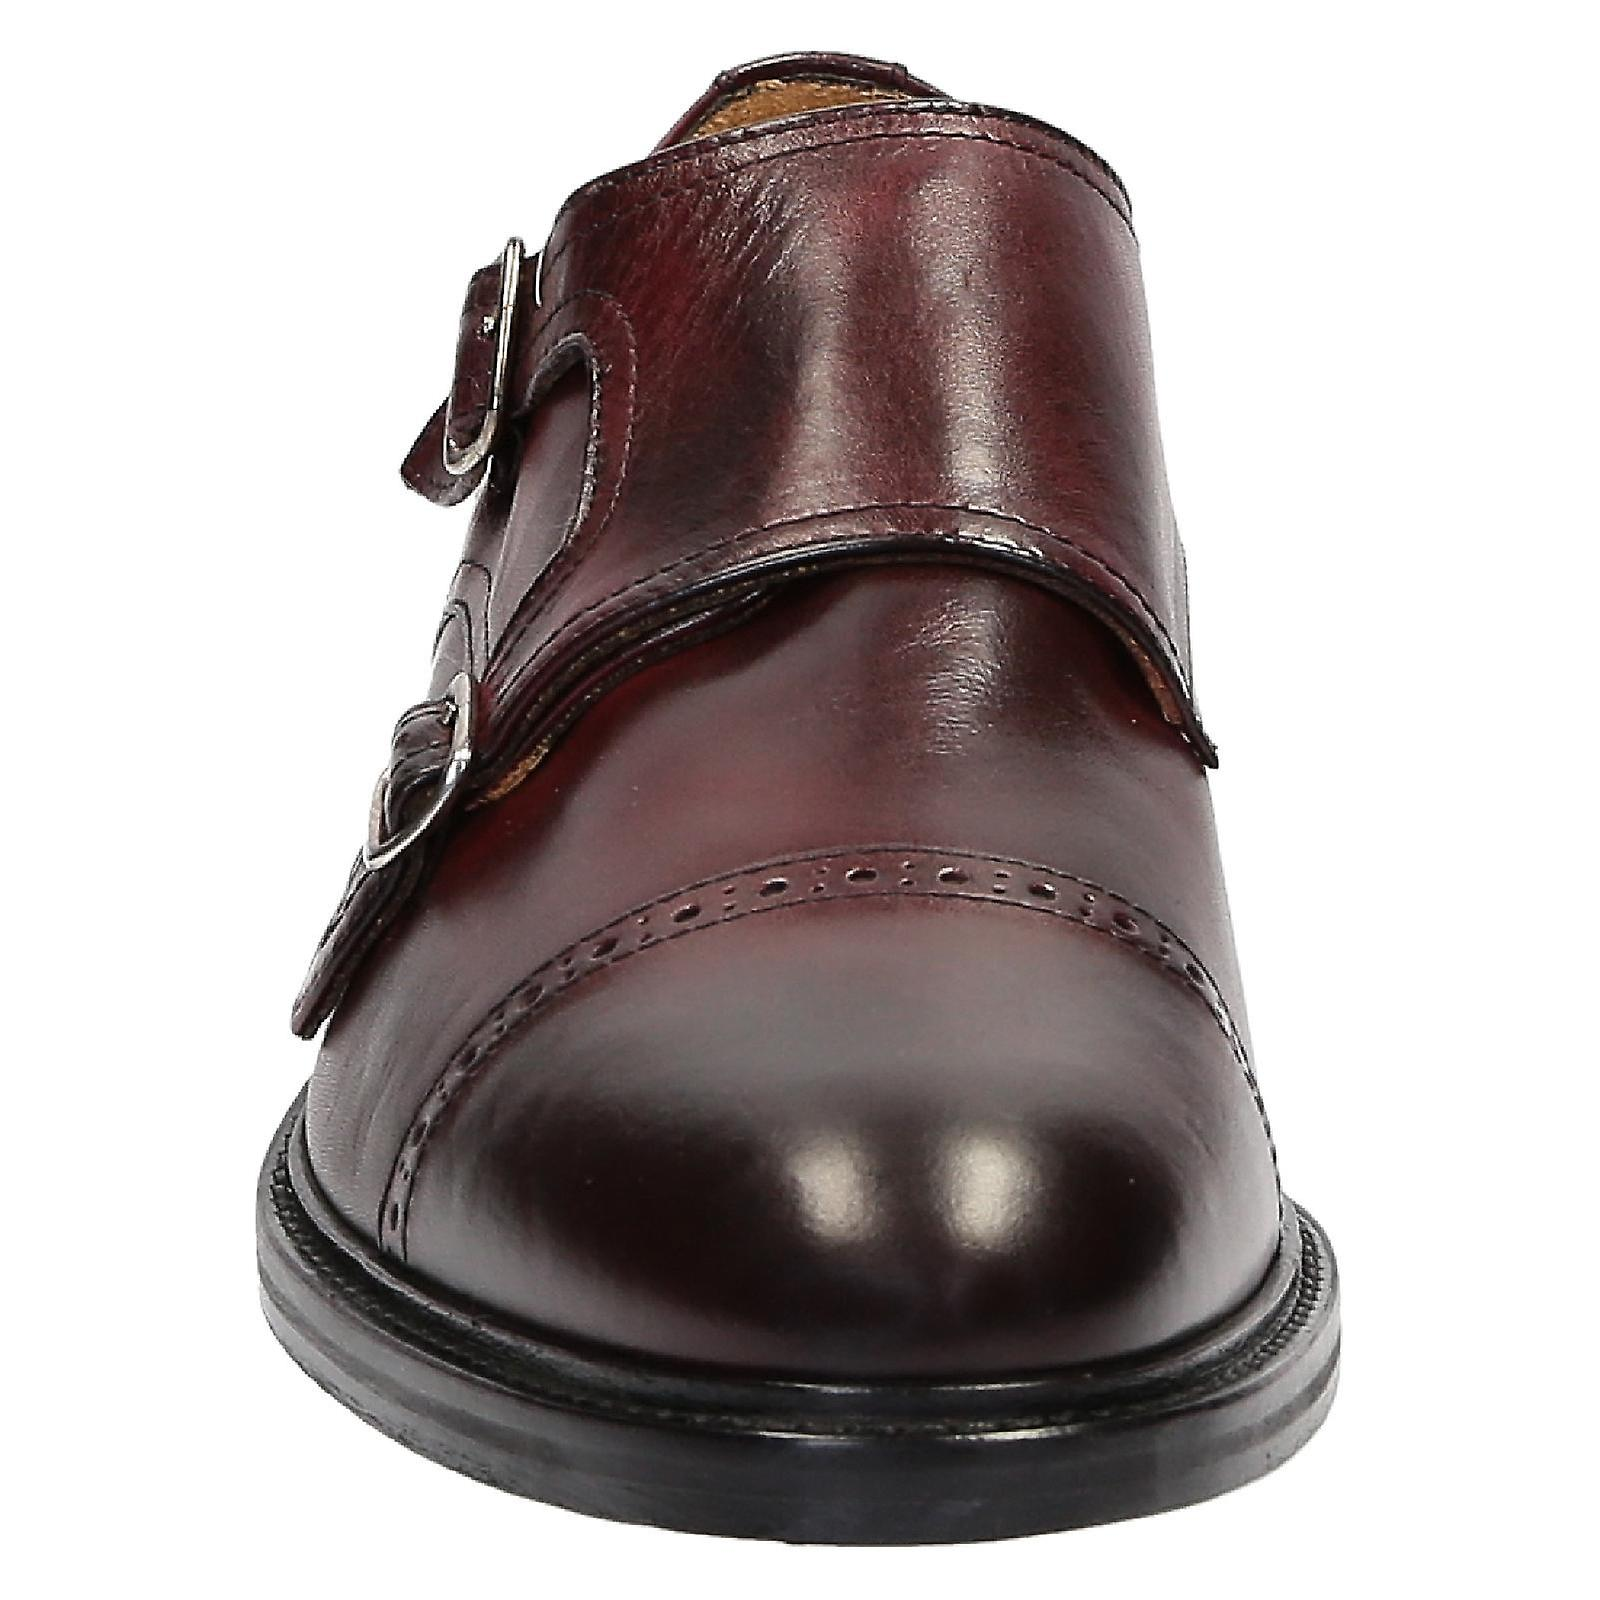 Handmade double monk monk monk strap Chaussure s in burgundy leather | Expédition Rapide